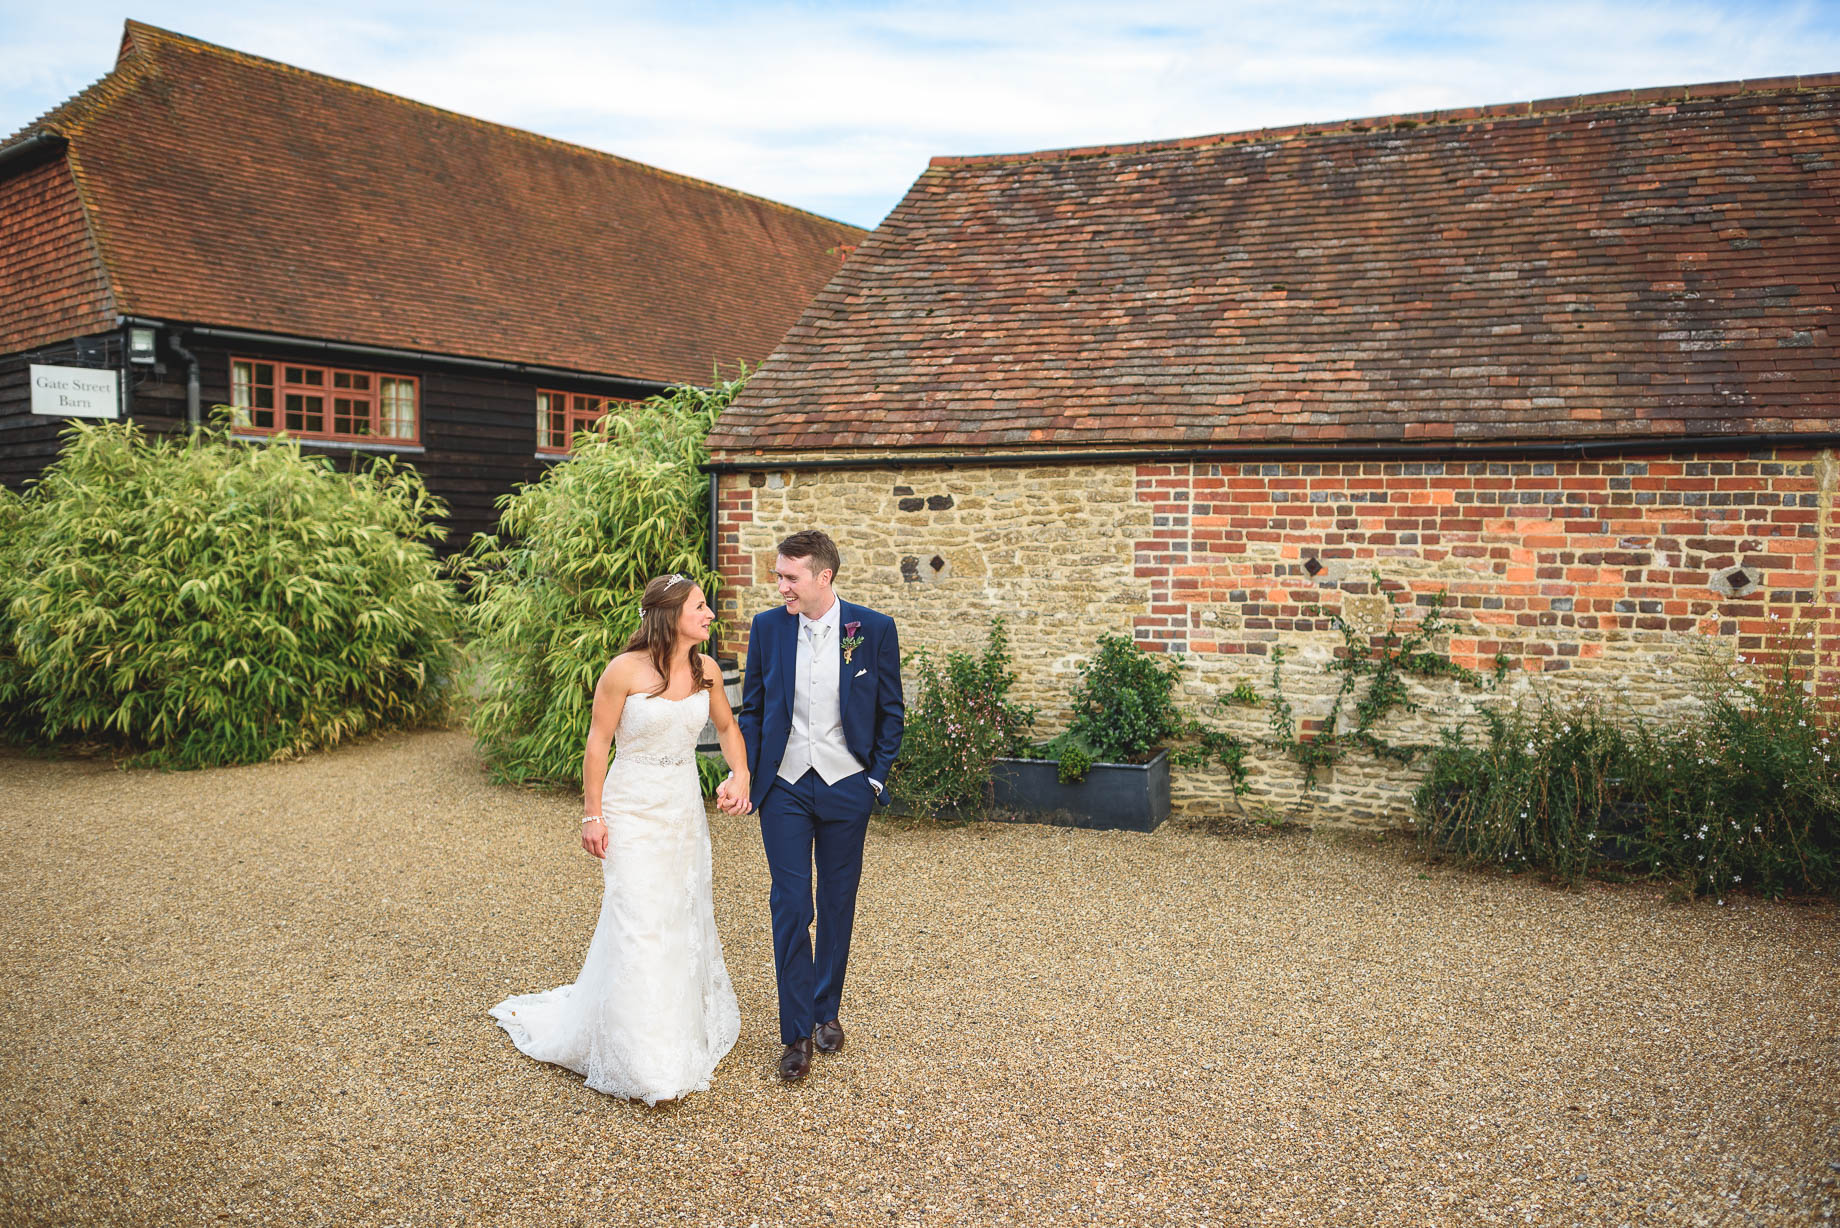 Gate Street Barn wedding photography - Guy Collier - Claire and Andy (109 of 192)